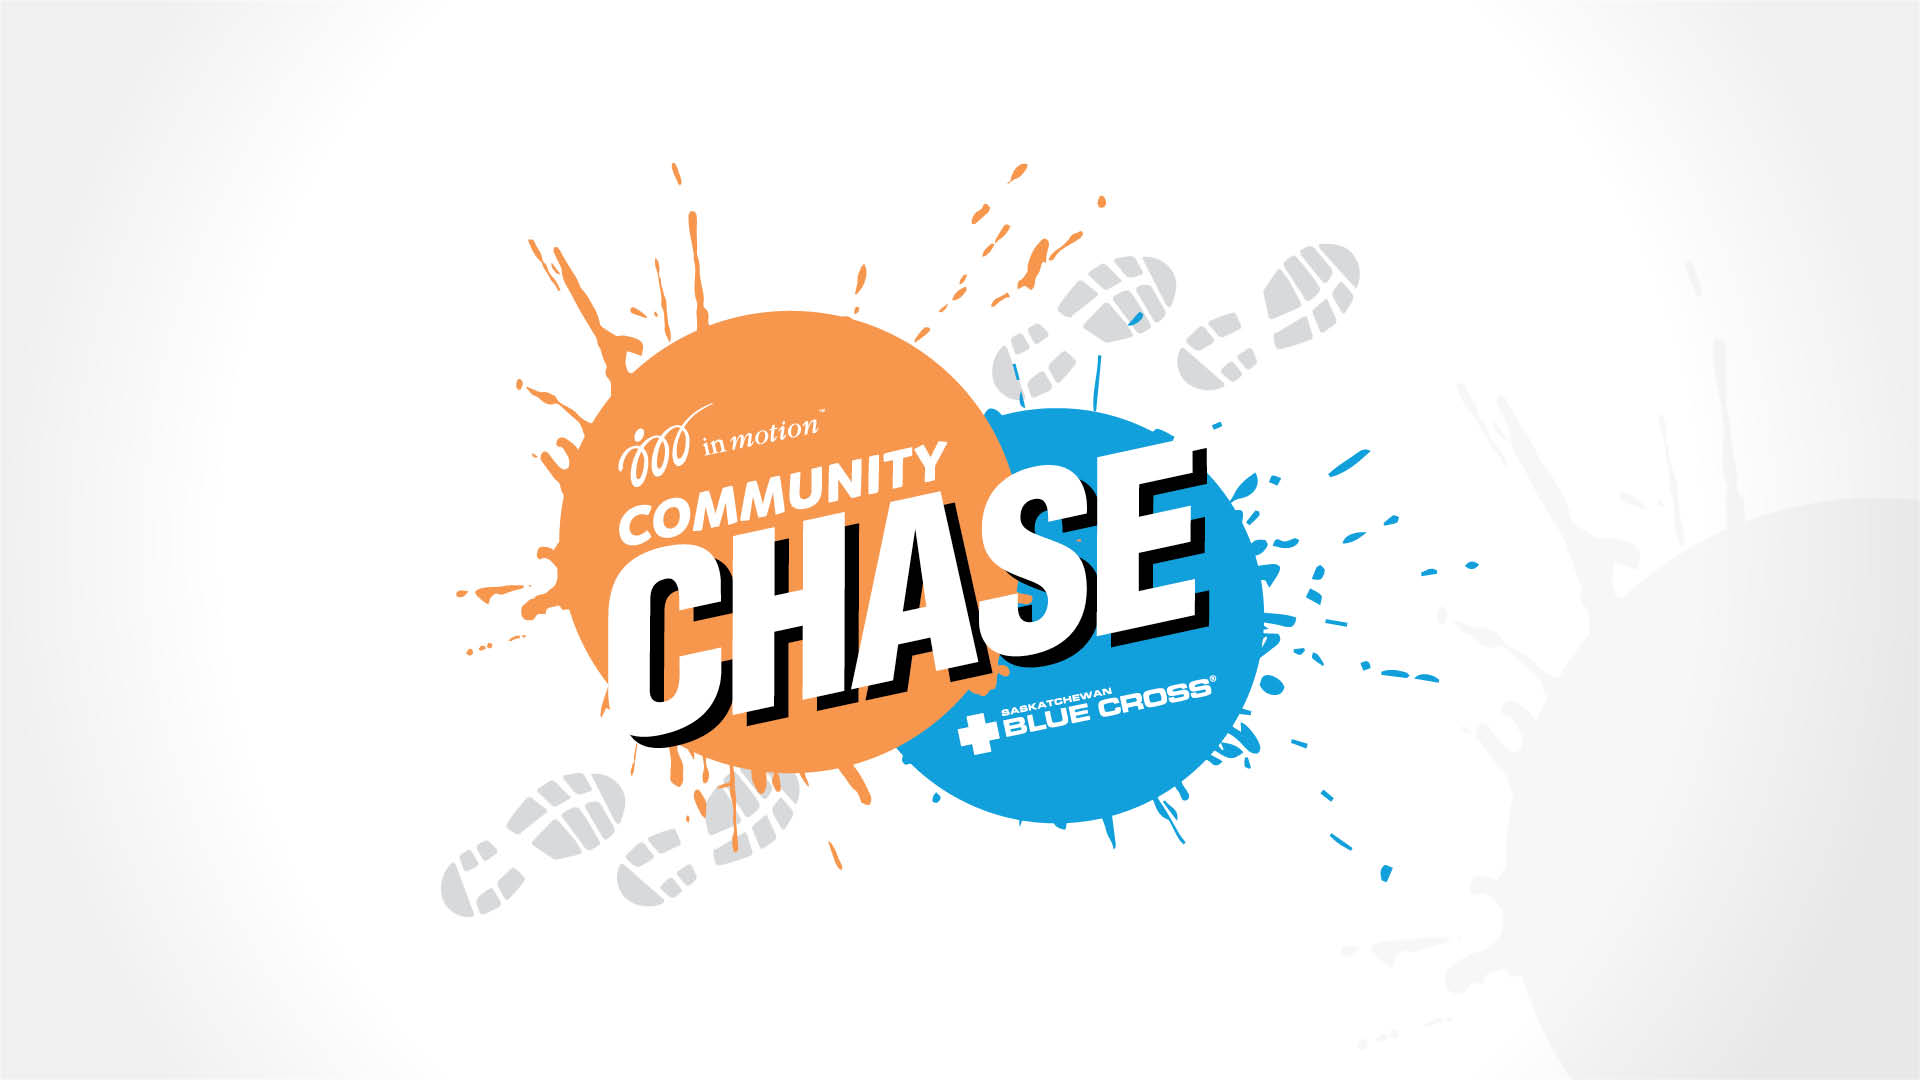 Saskatchewan in motion, Design, Community Chase Logo, Portfolio Image